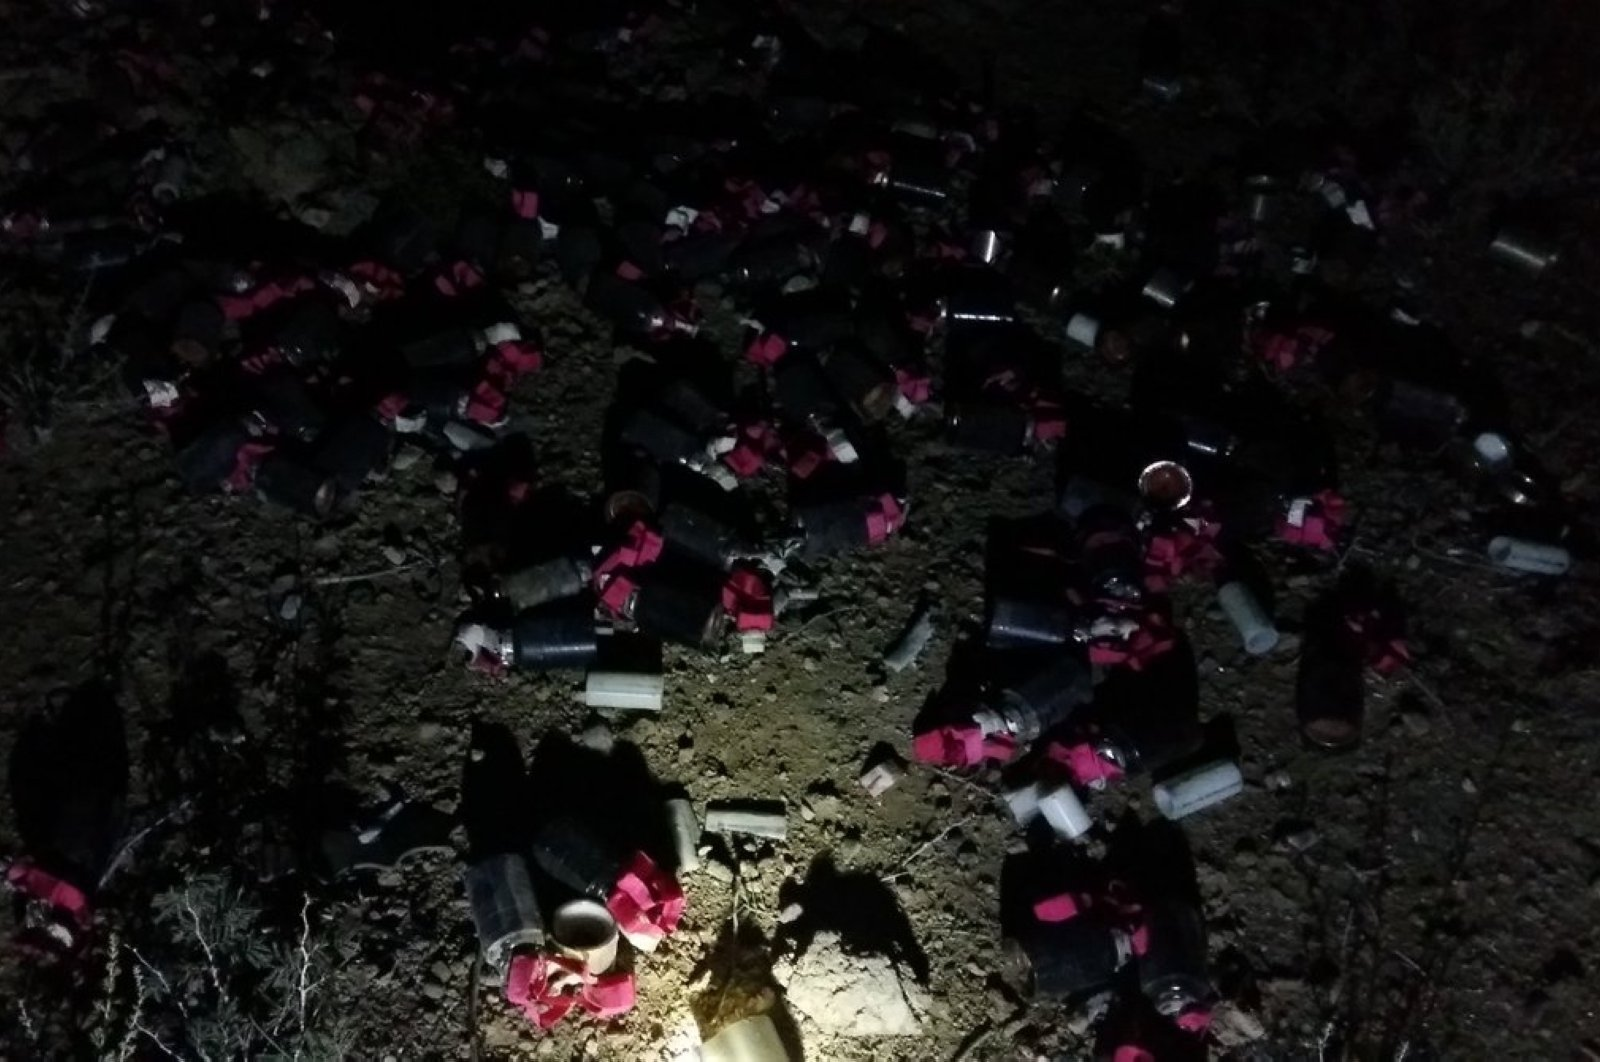 The image shared by Hajiyev on Twitter shows the cluster bomblets after explosion in Azerbaijan's Goranboy district on Oct. 6, 2020 (Photo taken from Twitter)